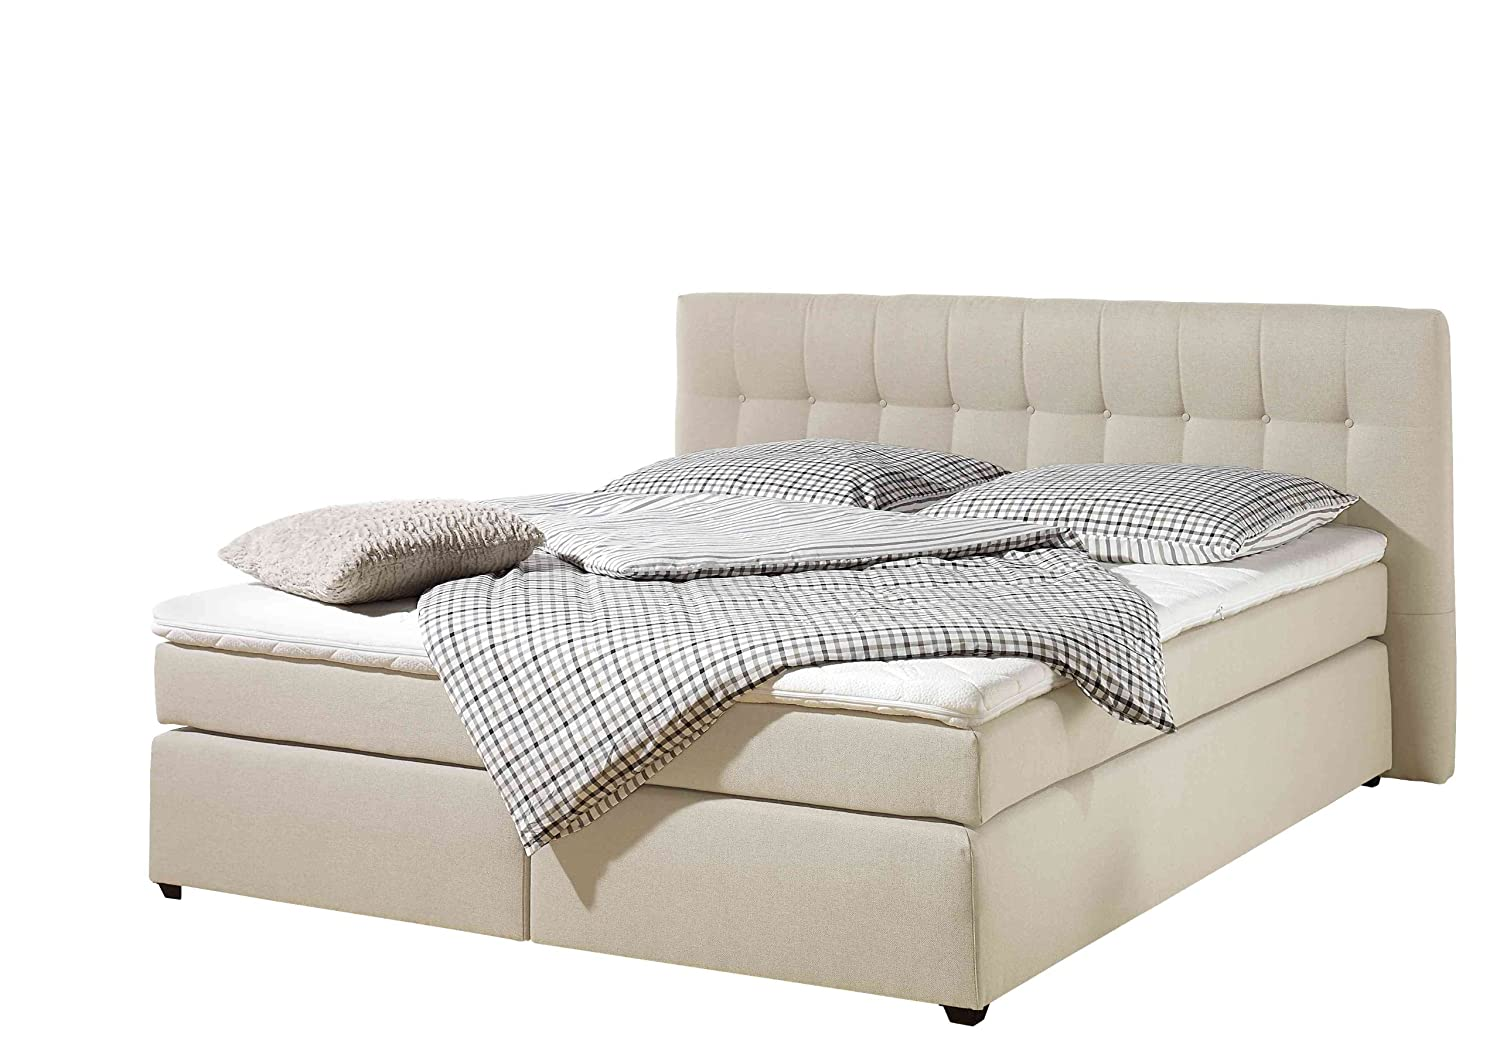 Maintal Betten 236107-3113 Boxspringbett Jeremy 180 x 200 cm inklusive Topper, creme